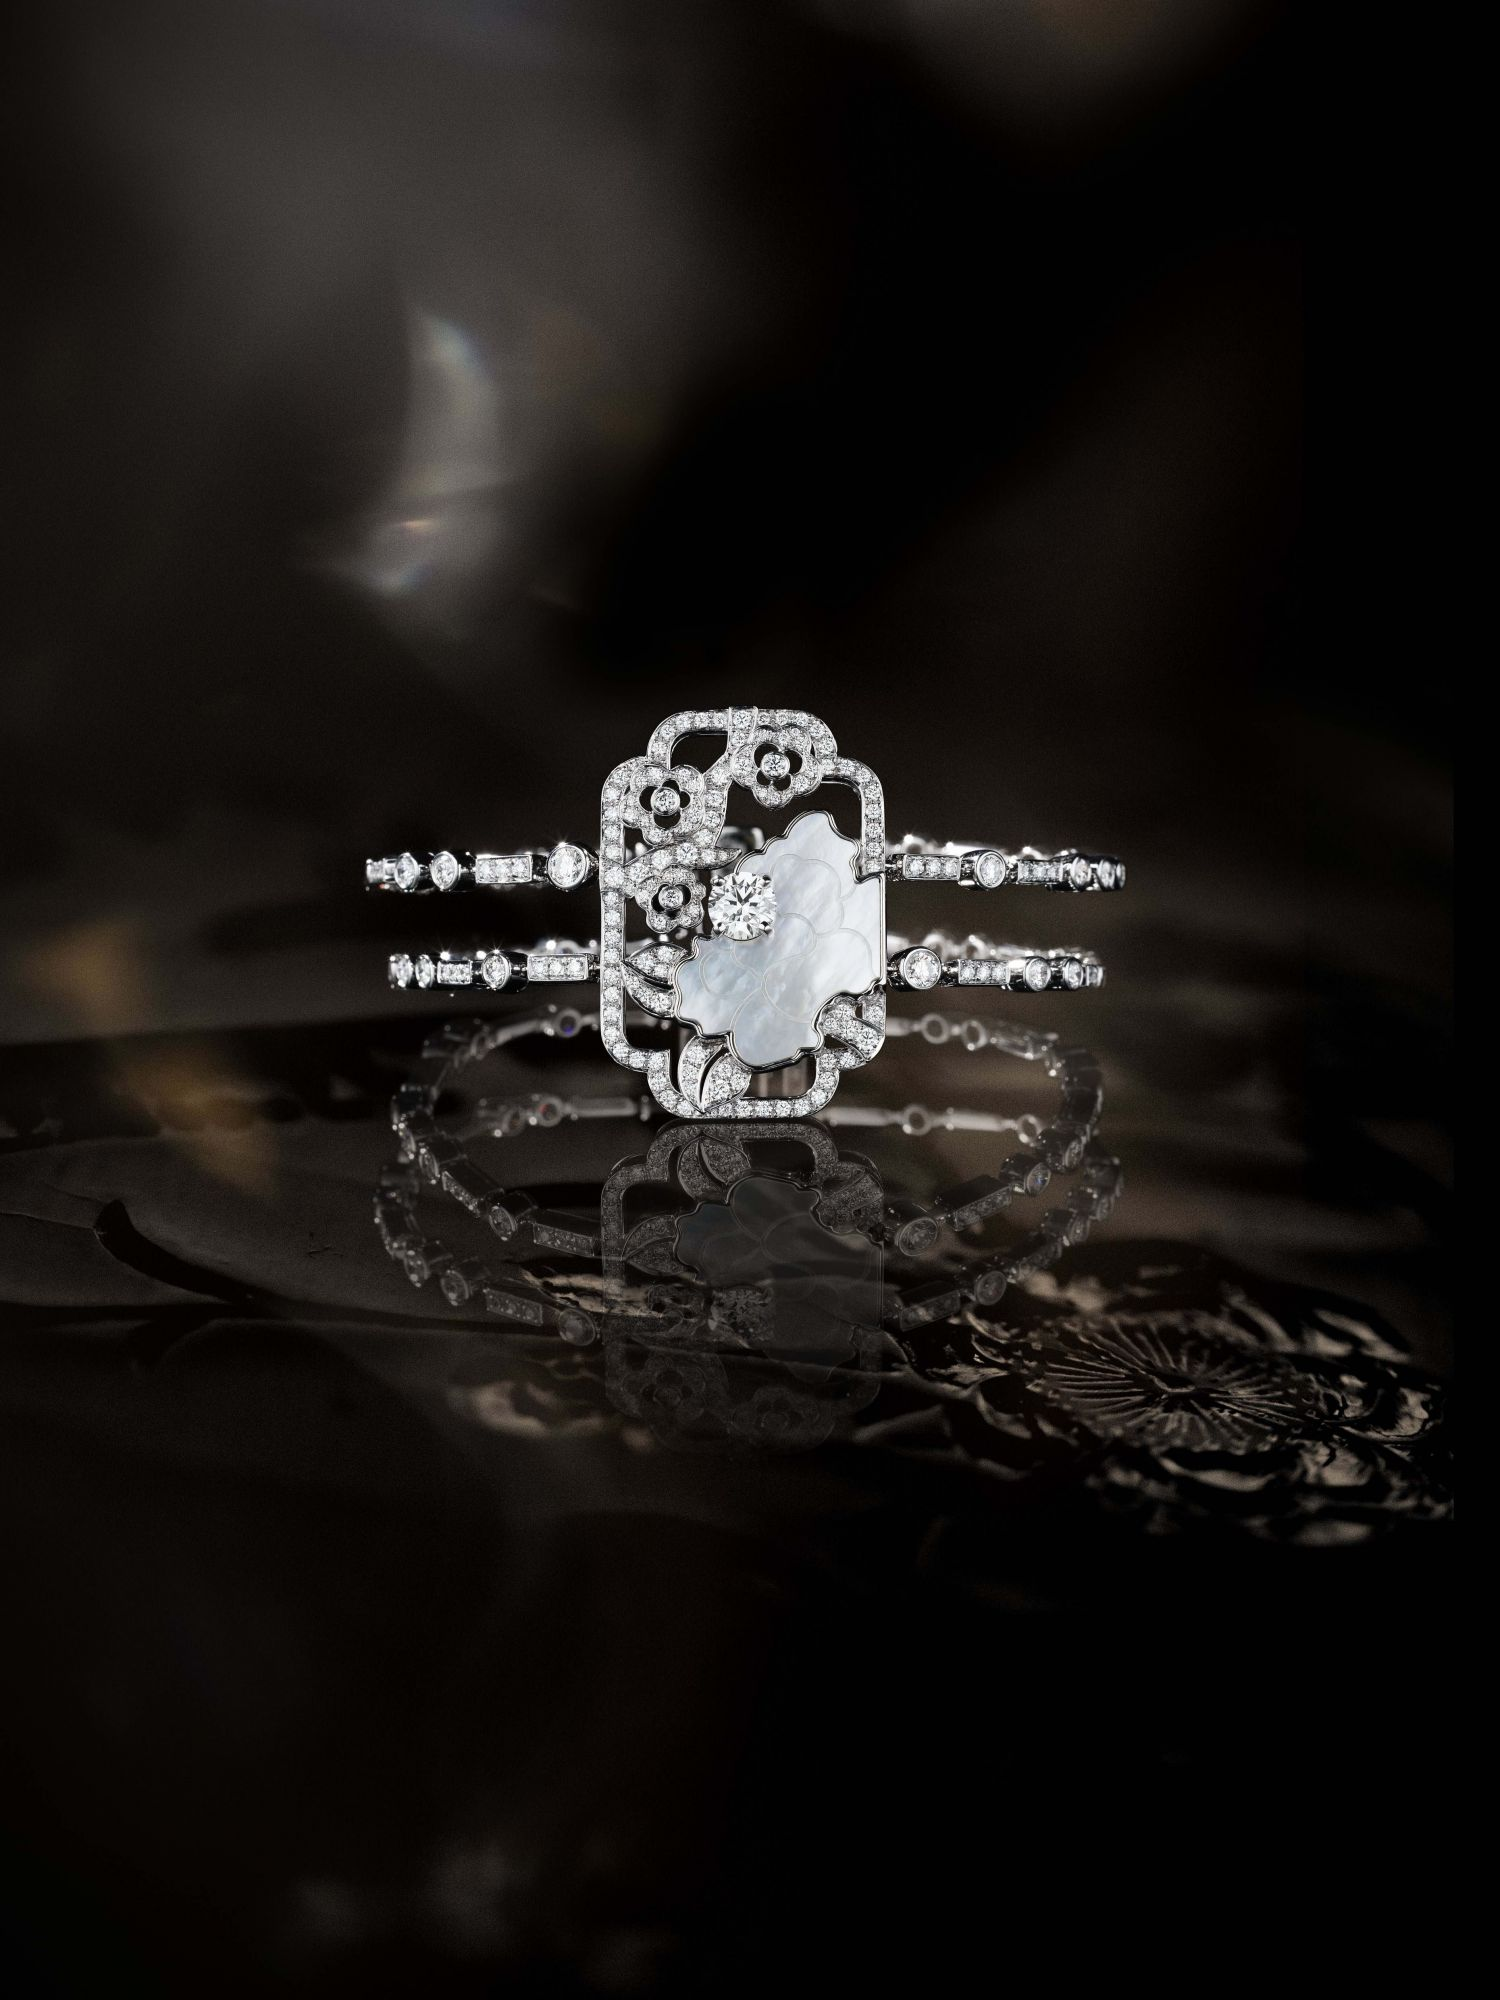 Chanel Introduces New Coromandel High Jewellery Collection